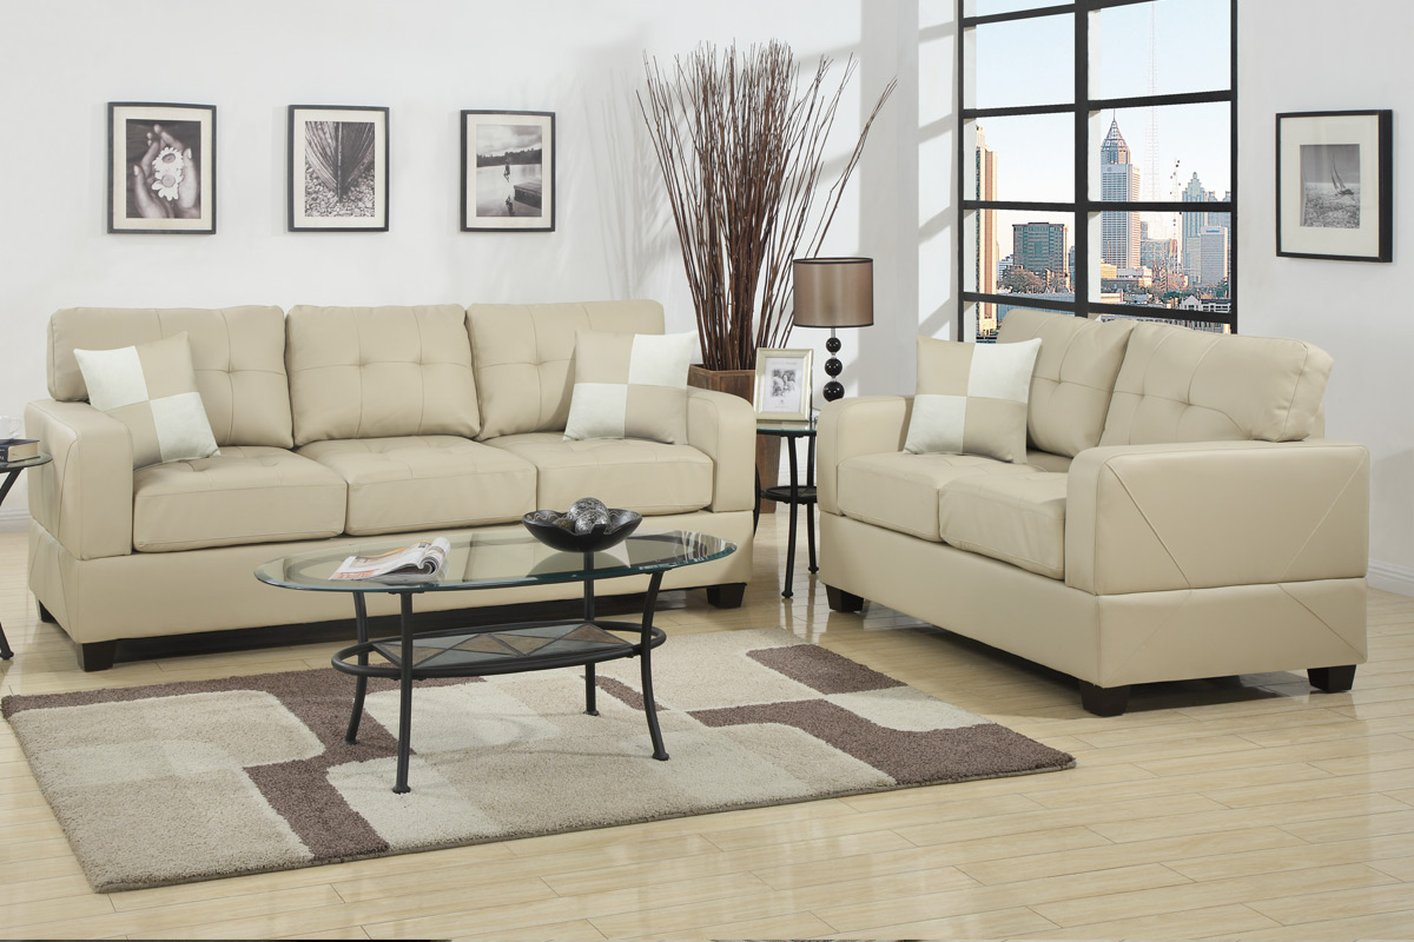 Poundex chase f7342 beige leather sofa and loveseat set for The room furniture